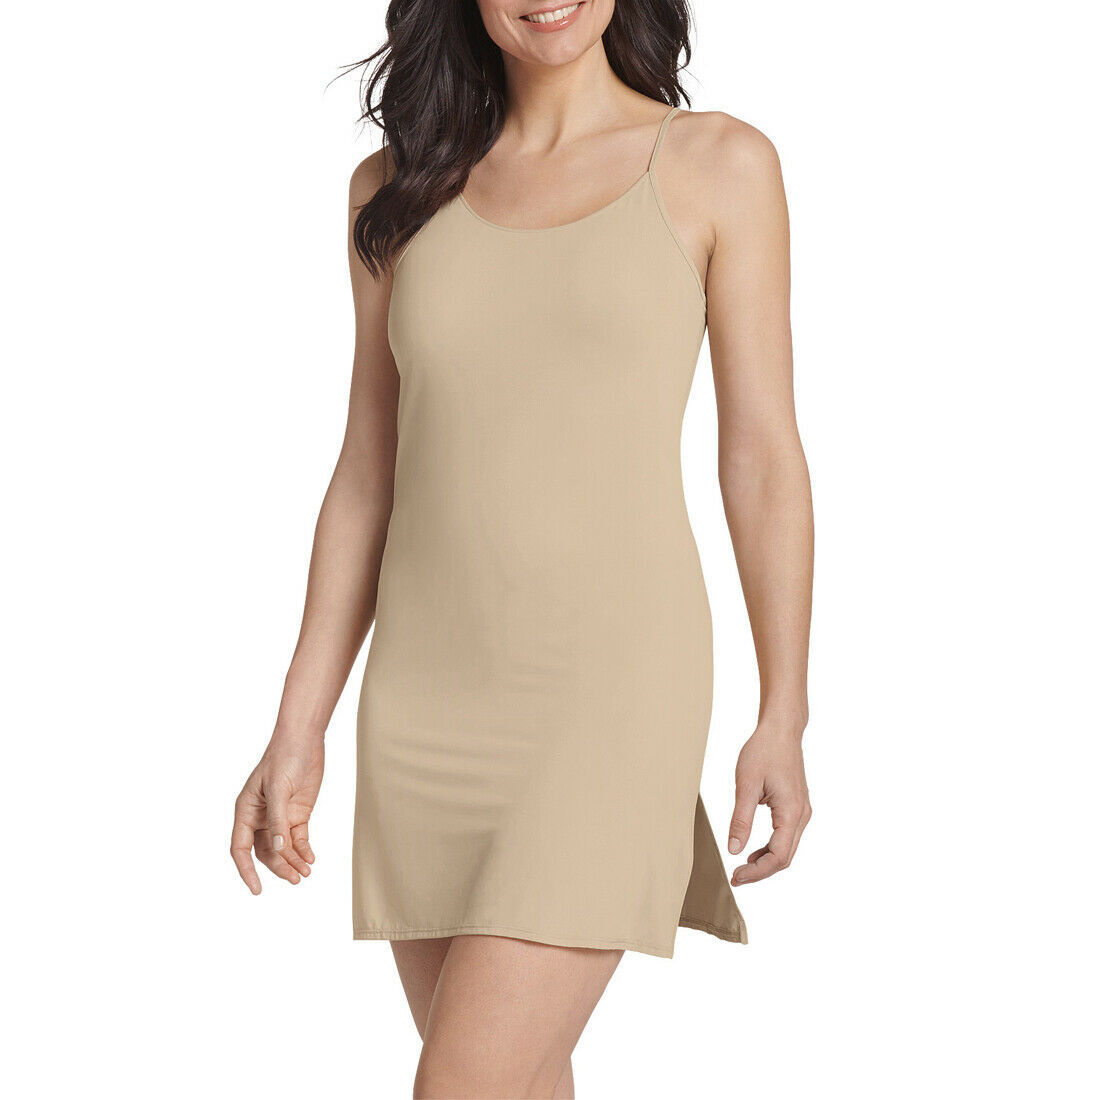 Primary image for Jockey Life - Women's Full Slip